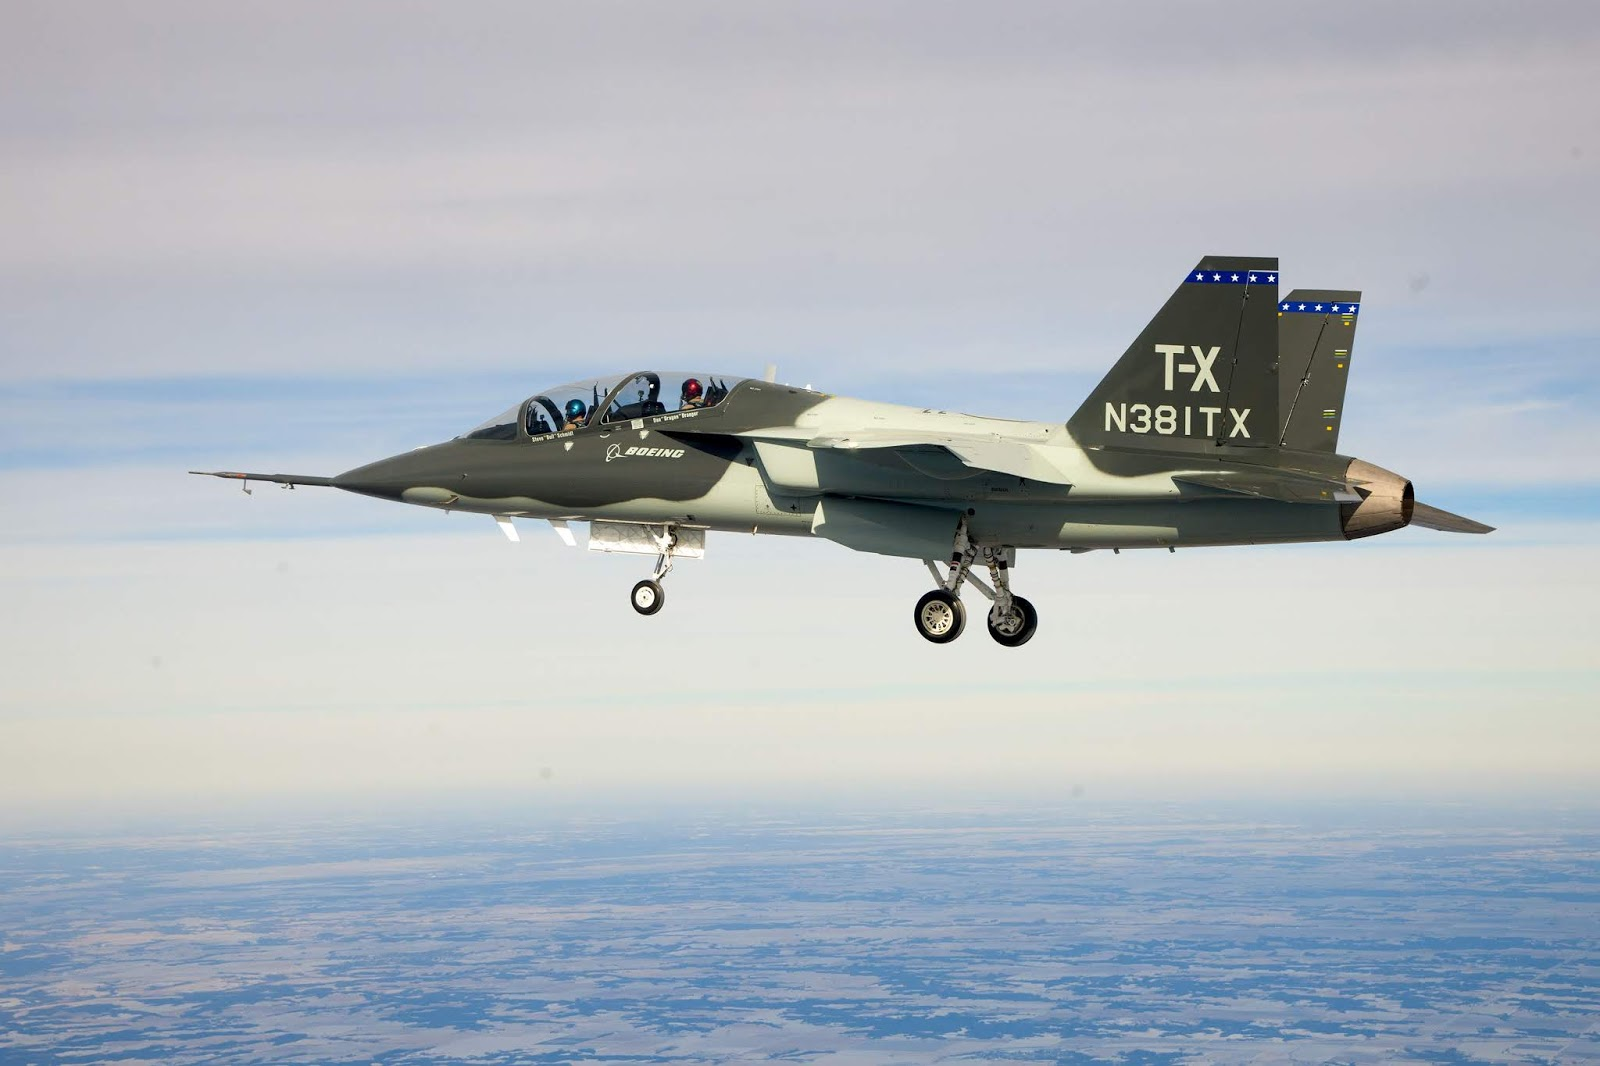 boeing t-x project